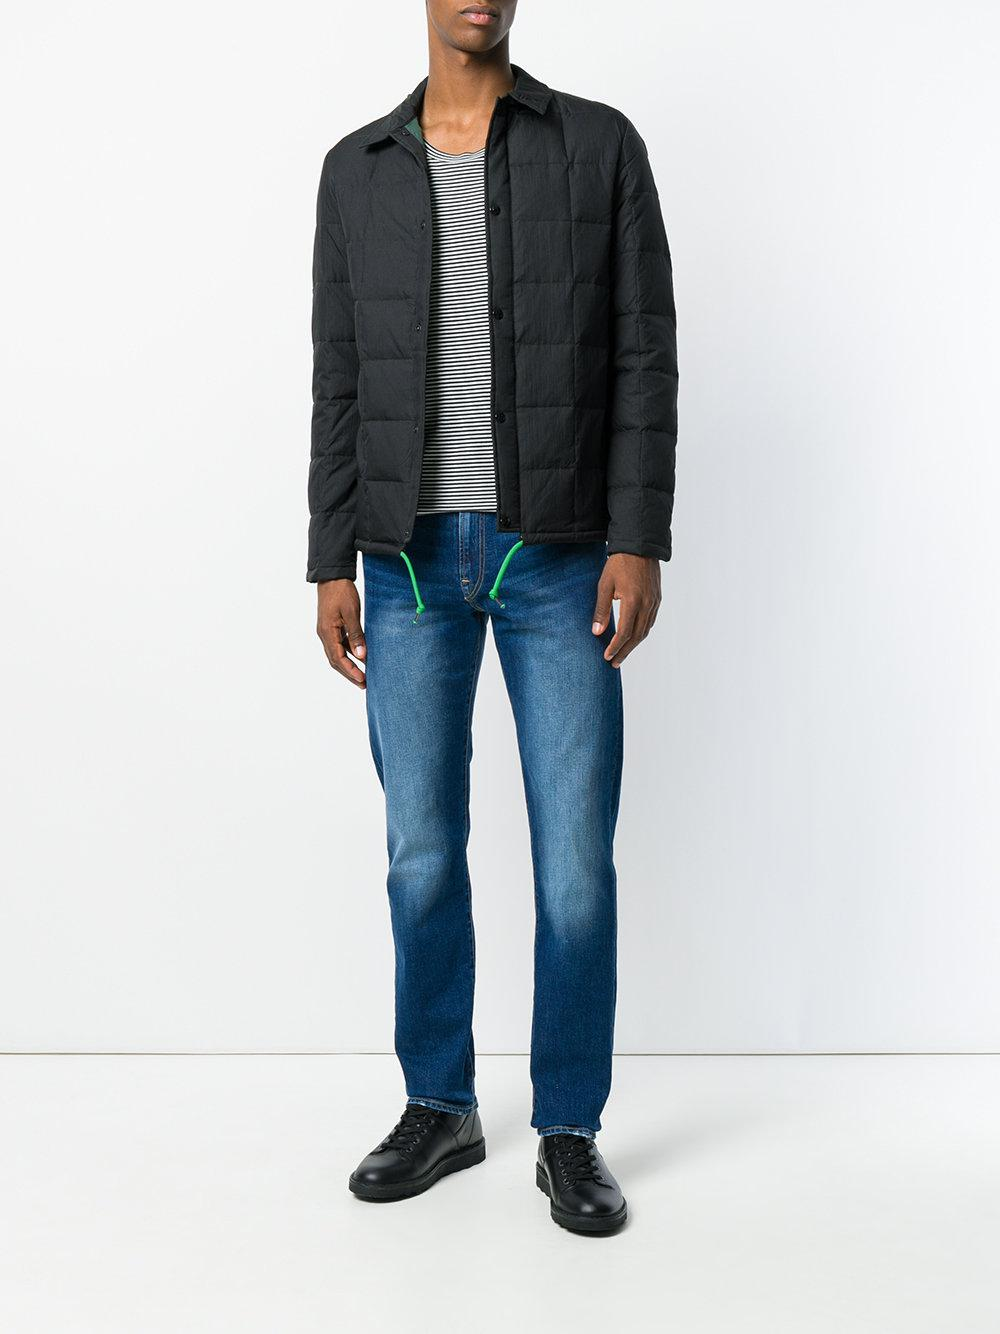 PS by Paul Smith Synthetic Down-filled Coach Jacket in Black for Men